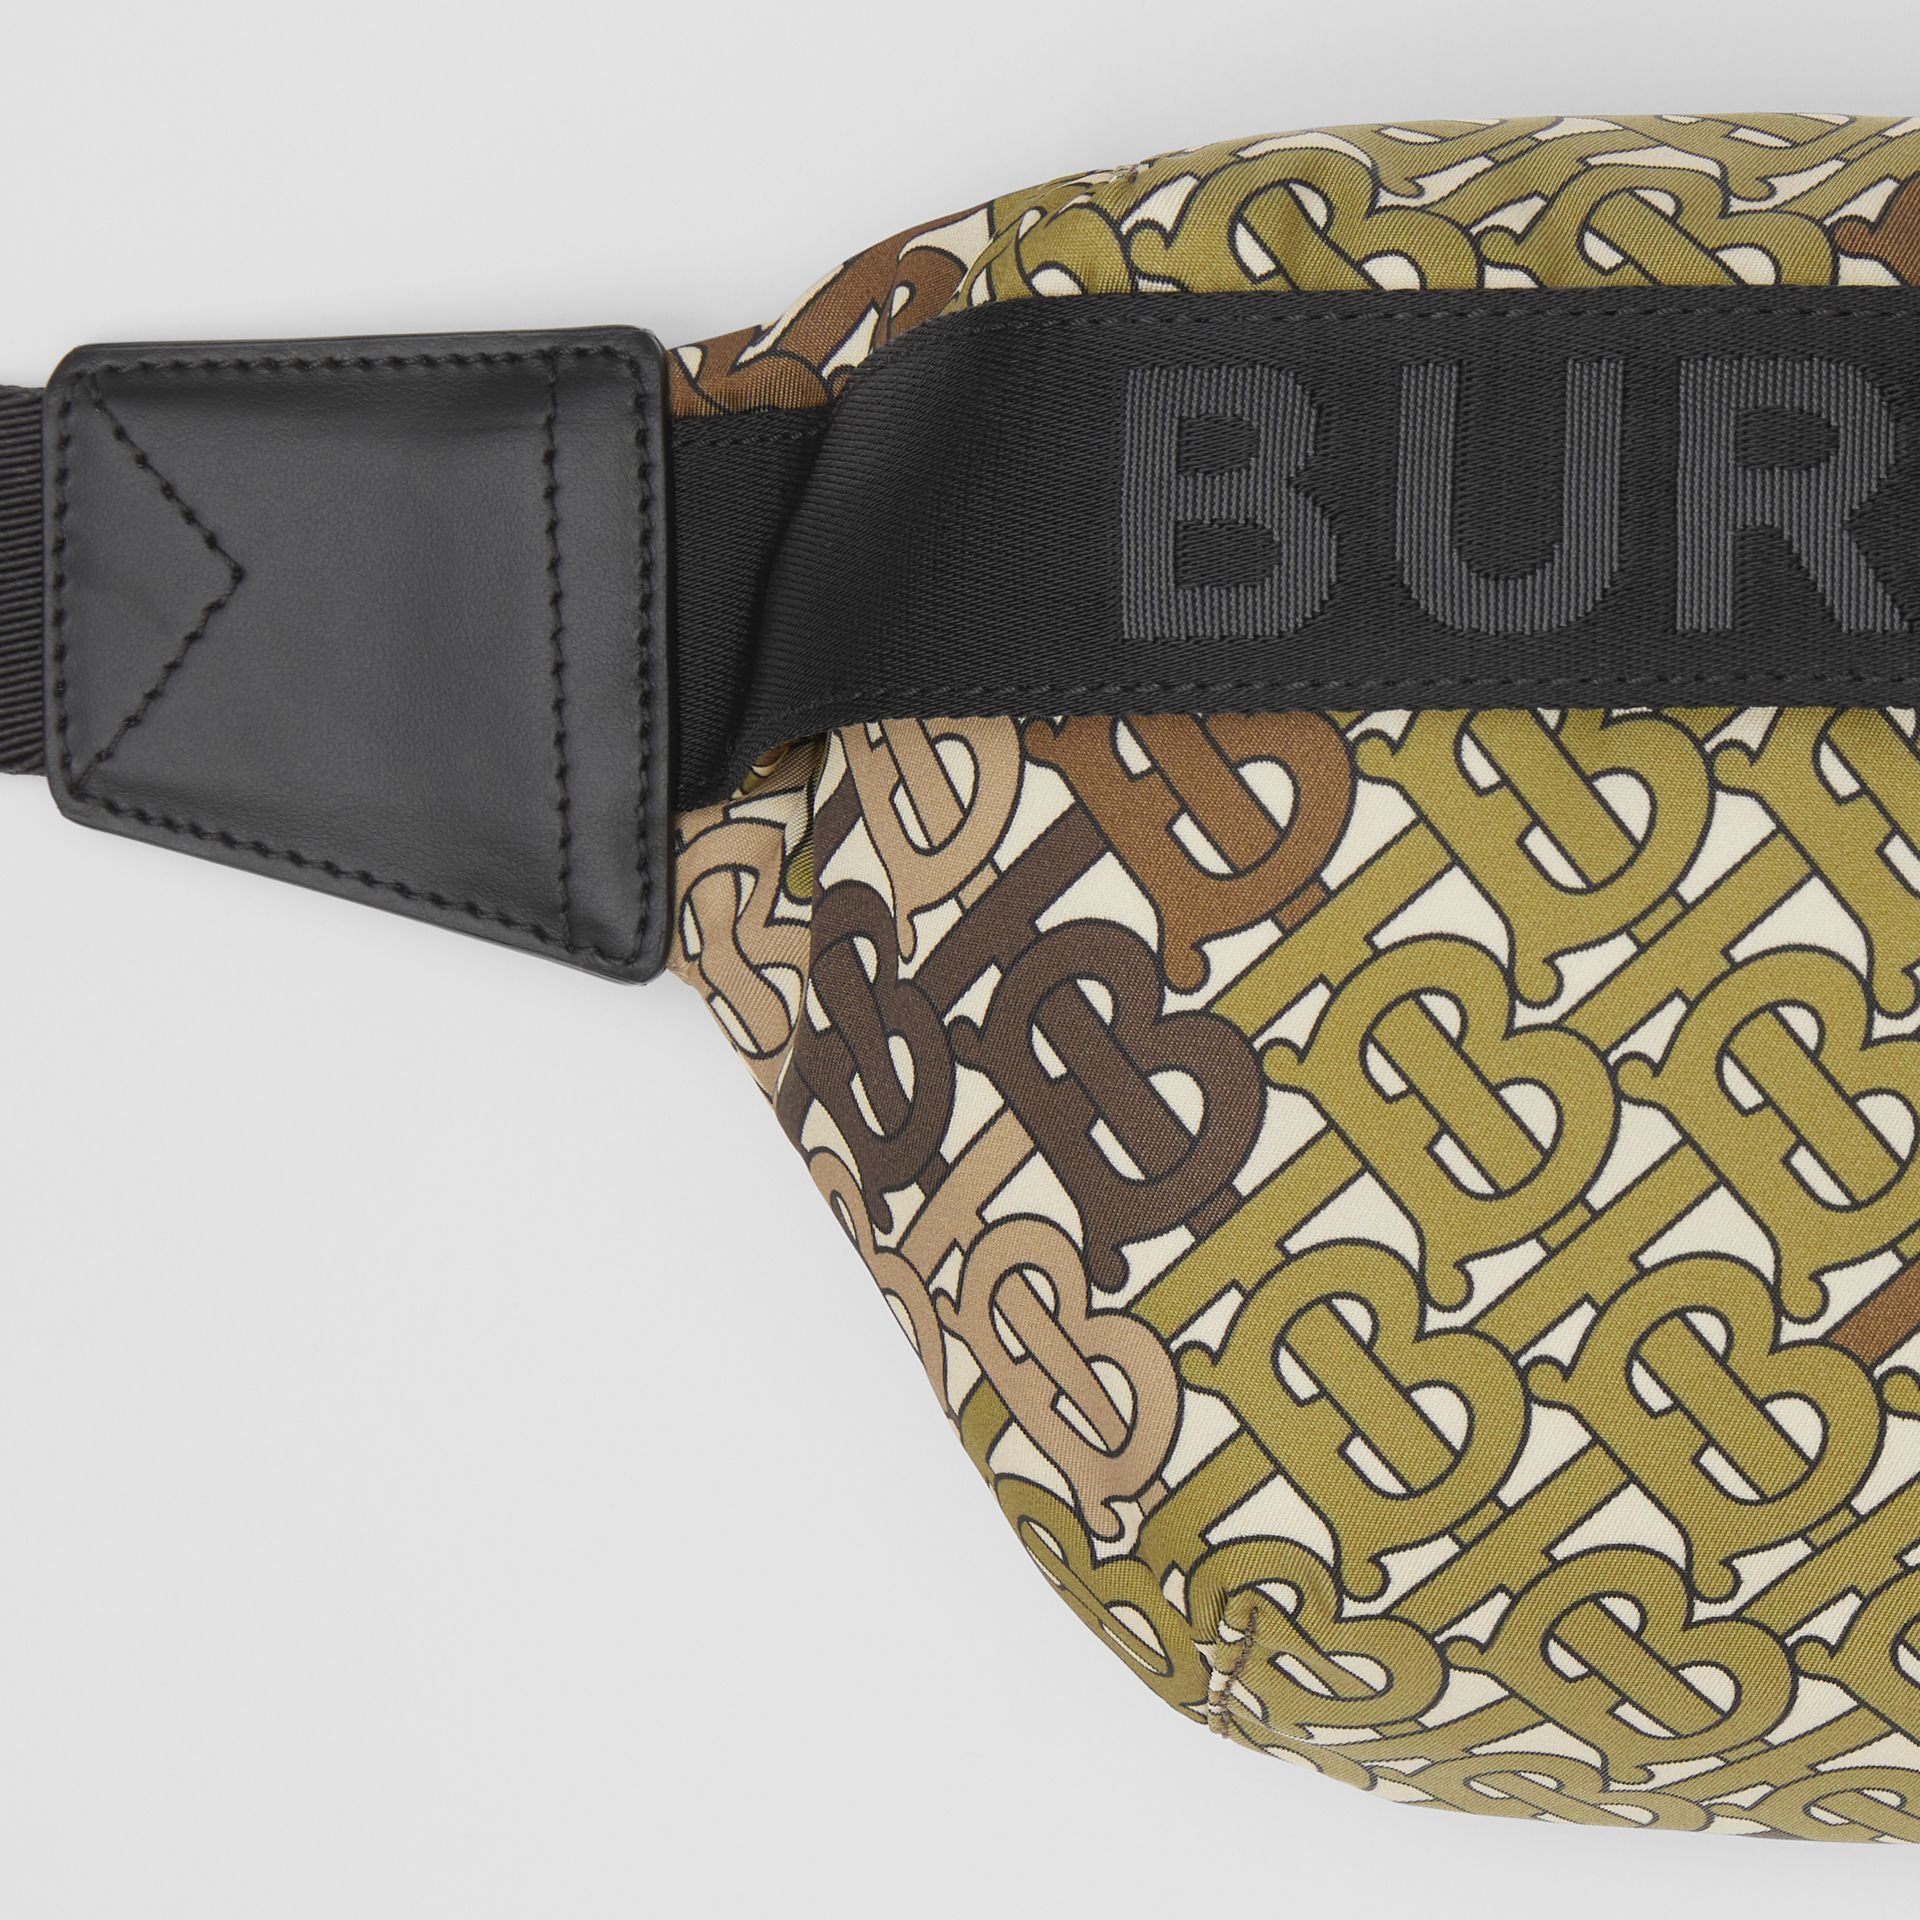 Medium Monogram Print Bum Bag in Khaki Green - Women | Burberry United Kingdom - gallery image 1